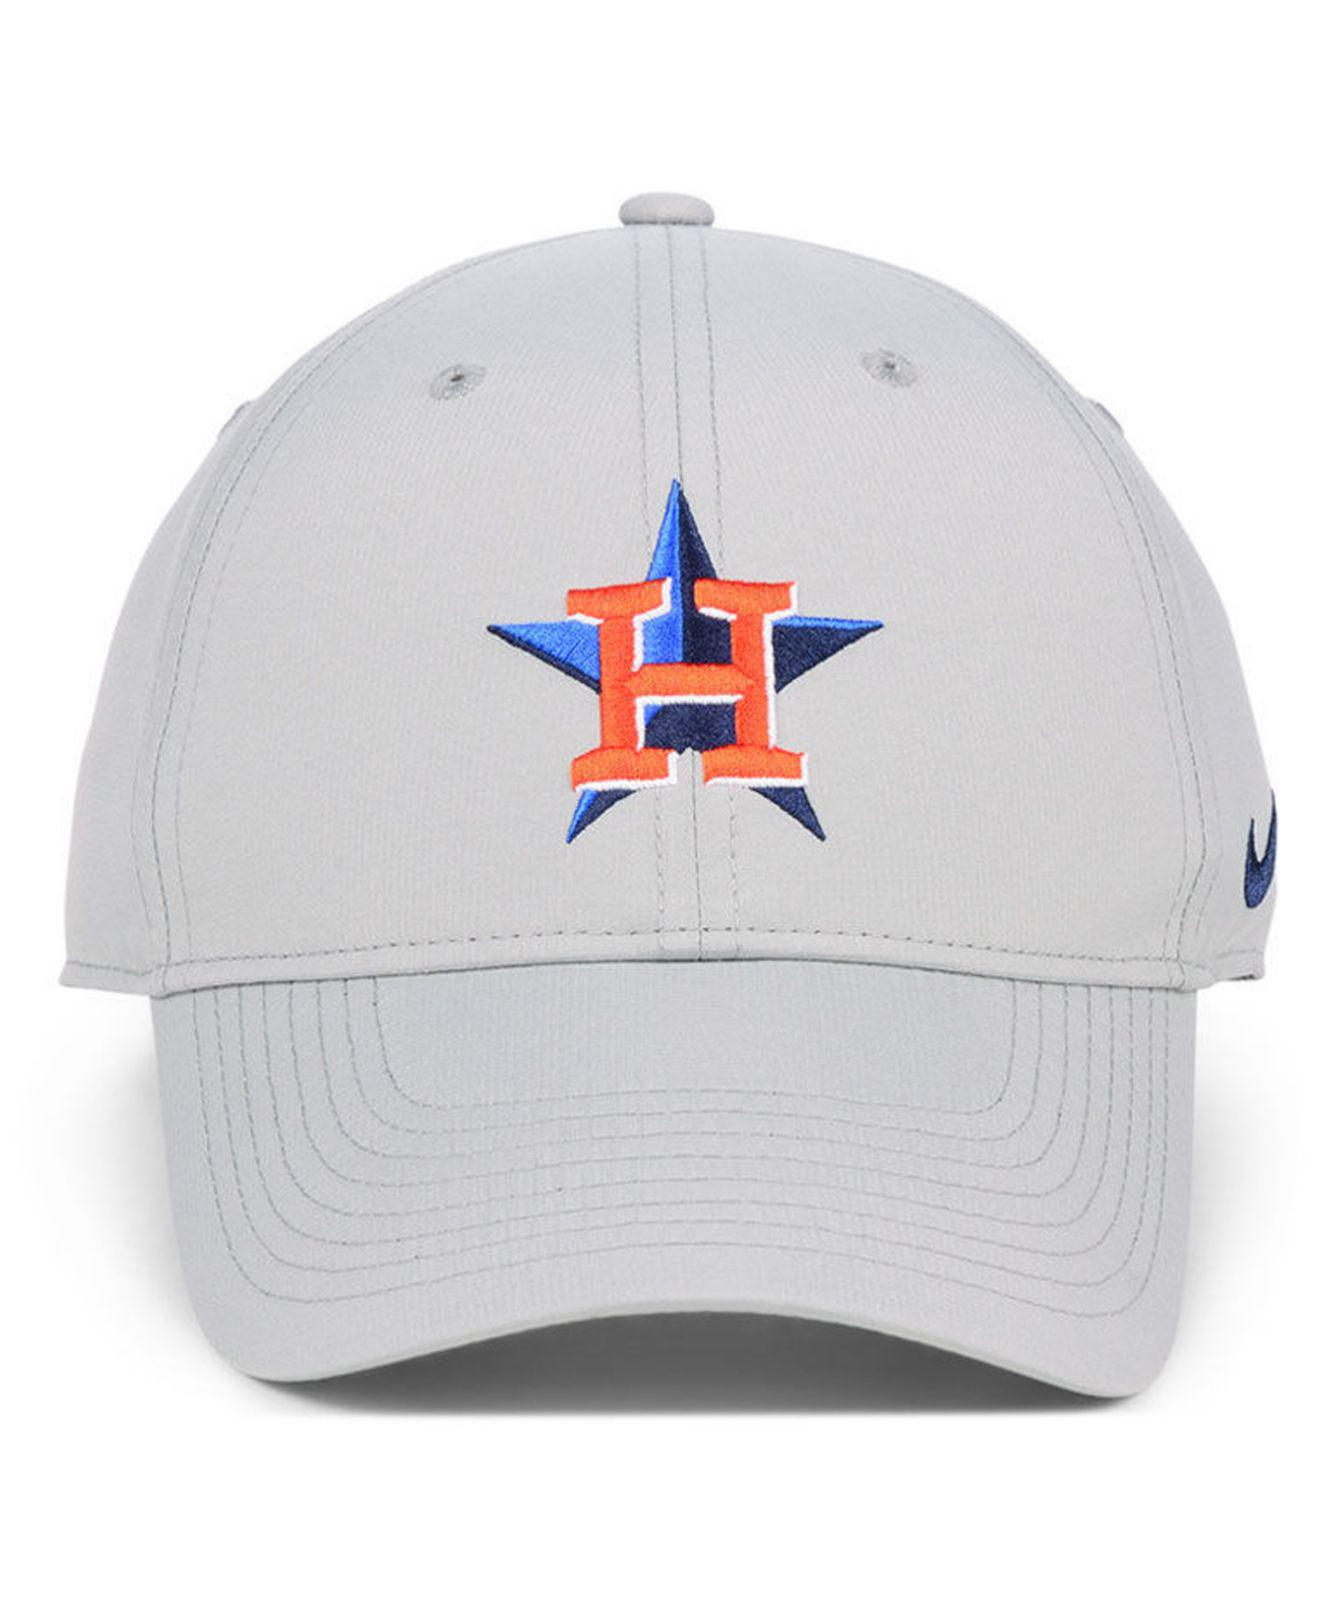 Lyst - Nike Houston Astros Legacy Performance Cap in Gray for Men a07a4d0a31d